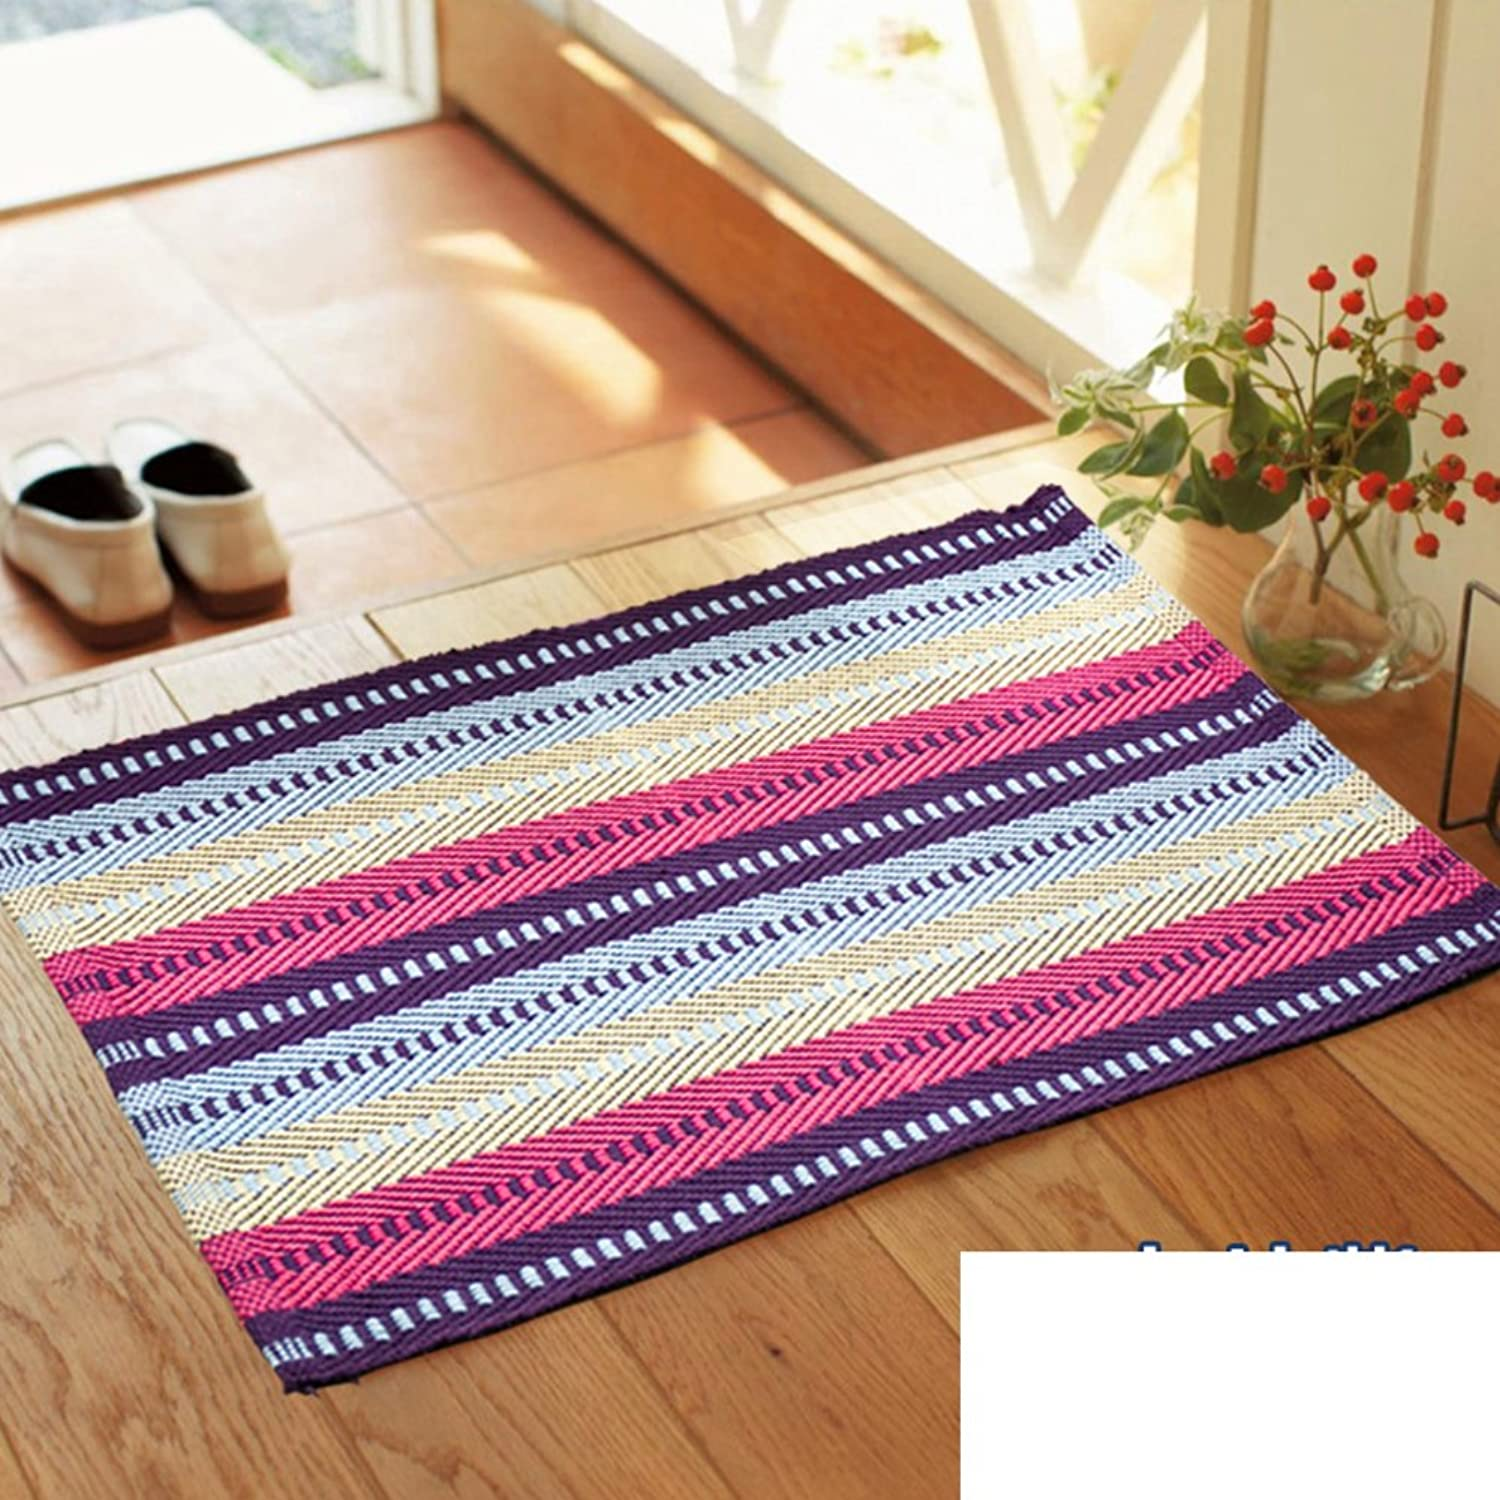 Doormats Fabric mats Living Room Bedroom mats Kitchen Floor mats Bathroom Water-Absorption mat-F 150  200cm(59x79inch)